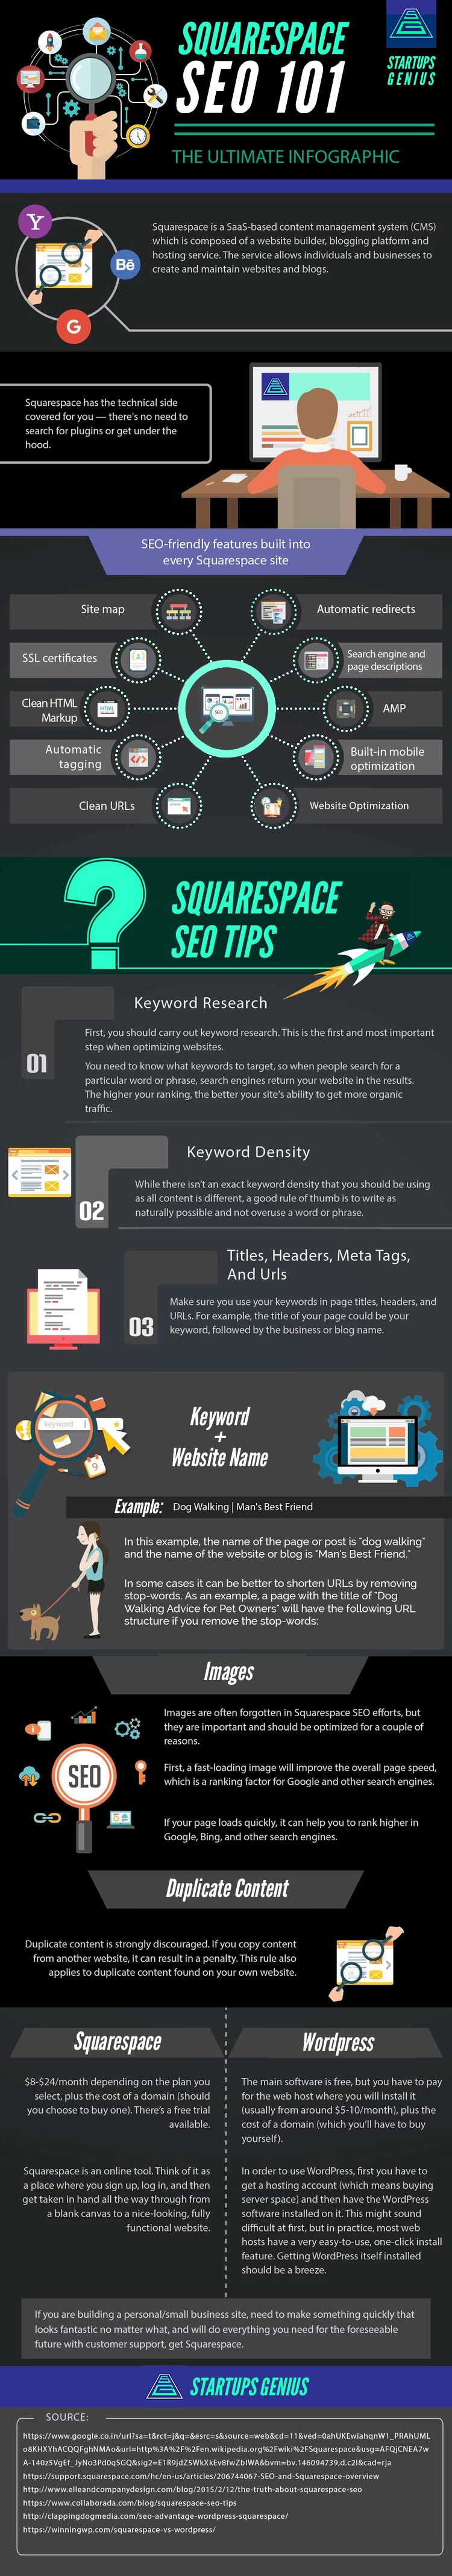 squarespace seo infographic.jpg